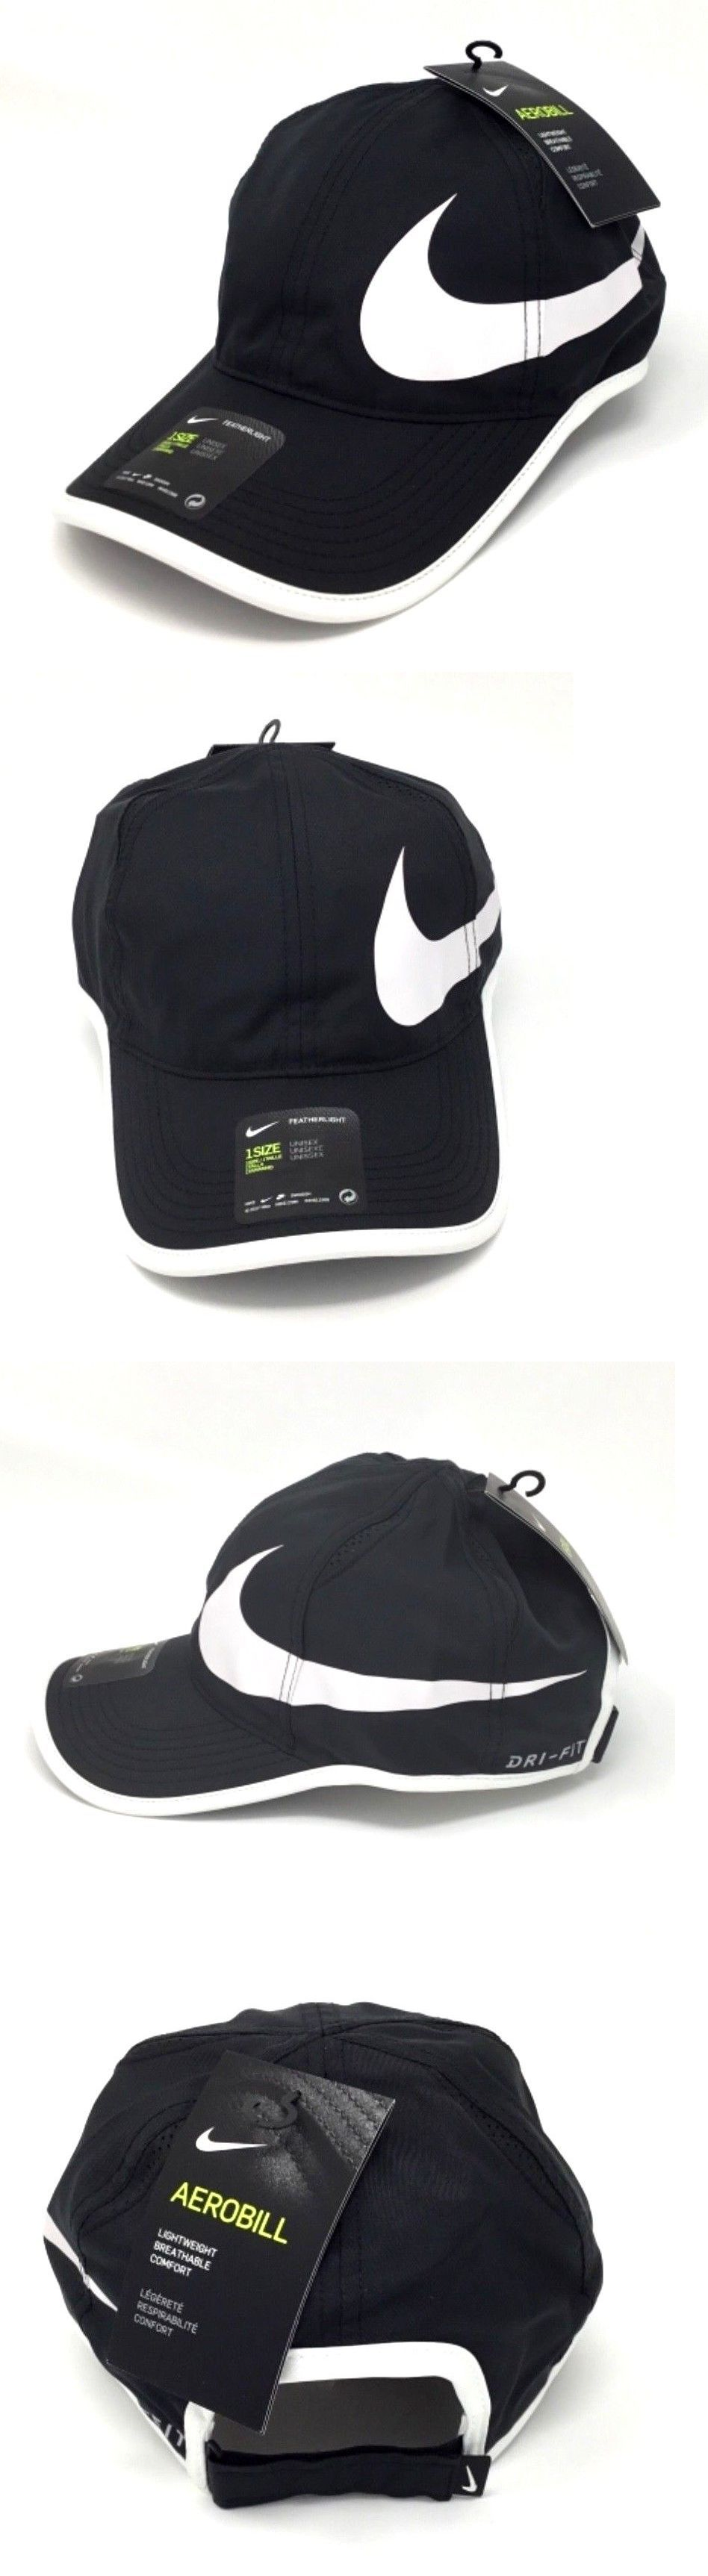 Clothing Shoes and Accessories 62229  Nike Nikecourt Aerobill Featherlight  Adjustable Tennis Hat Cap 864100 011 3f6b33dc6ba0